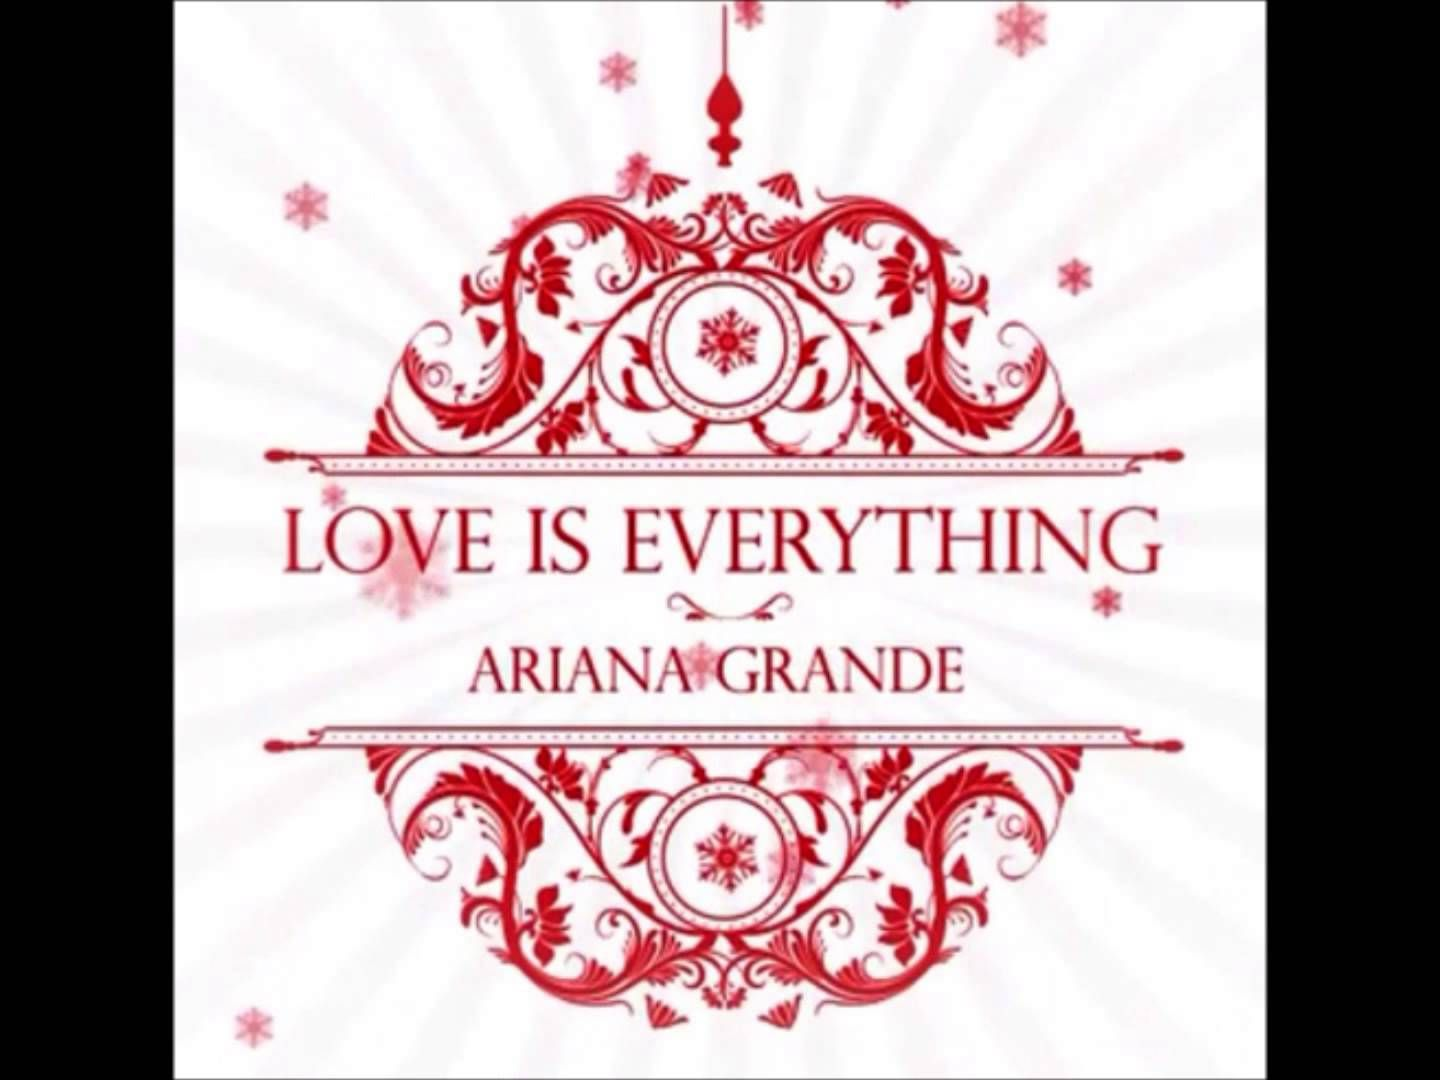 Ariana Grande Love is Everything Chanson ariana grande